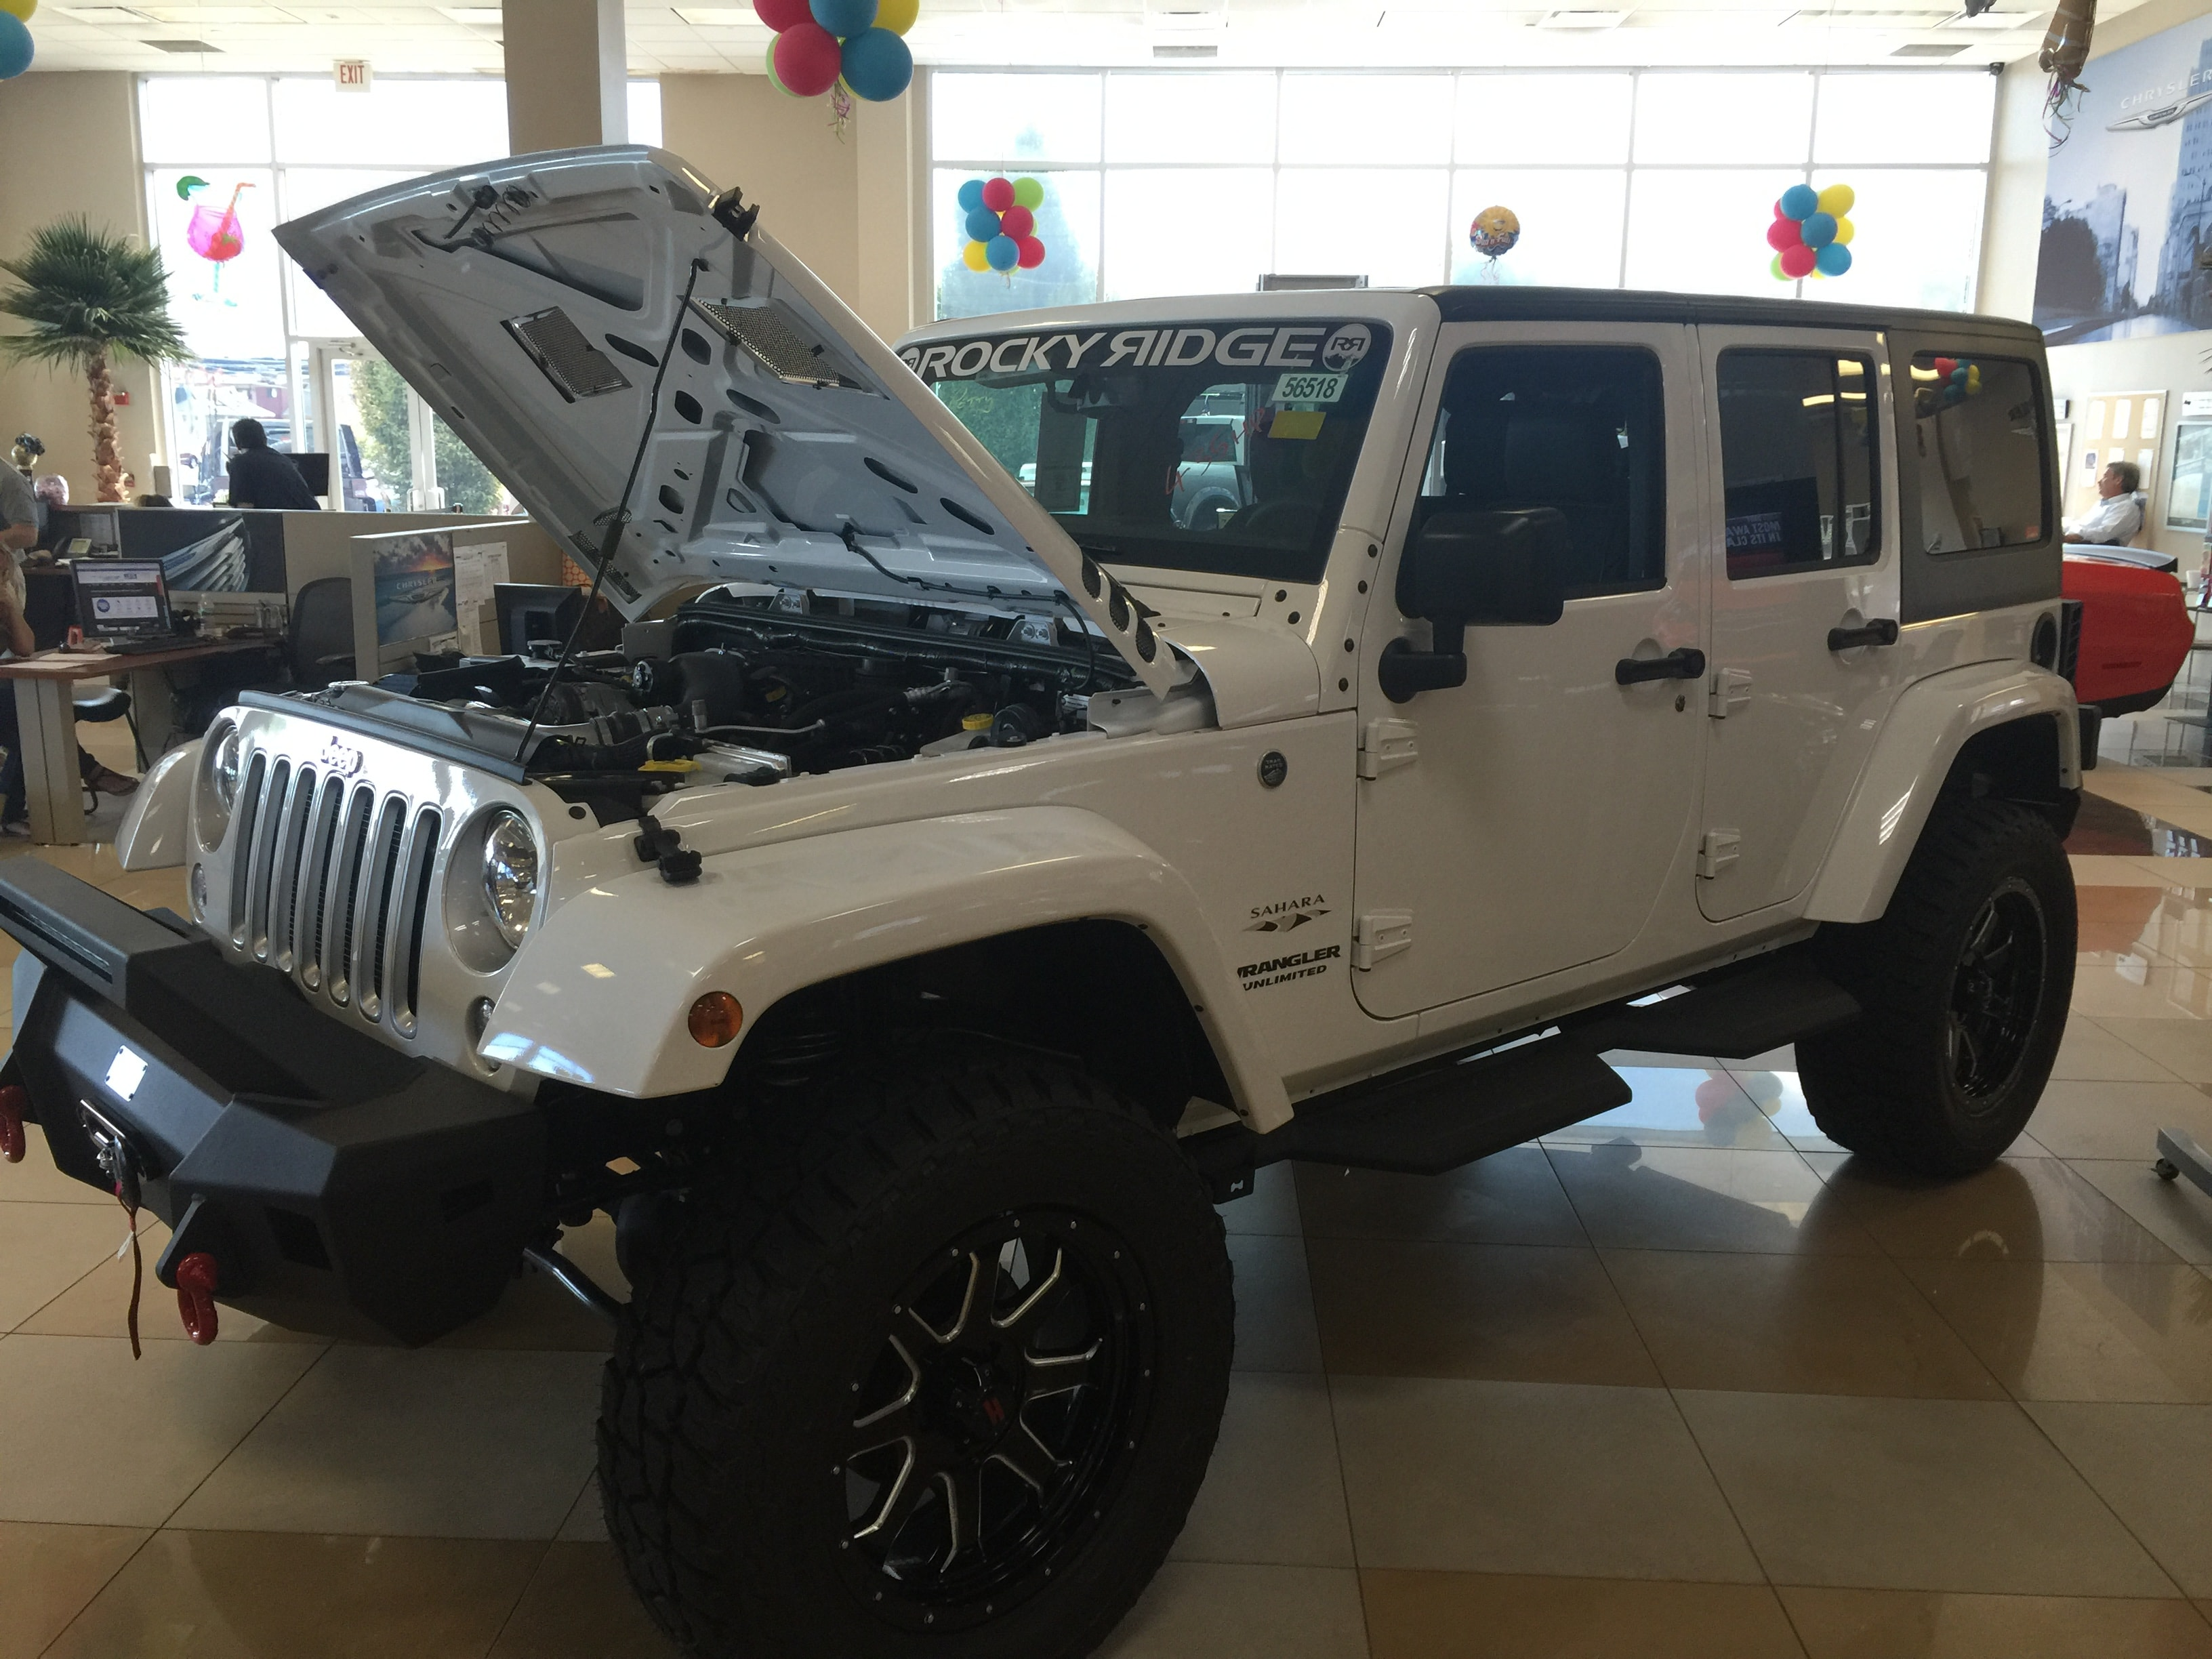 Richard Petty Dodge Challenger Jeep Wrangler 4 0 Stroker Engine For Sale Introducing The 2016 Unlimited Rocky Ridge Adrenaline Edition